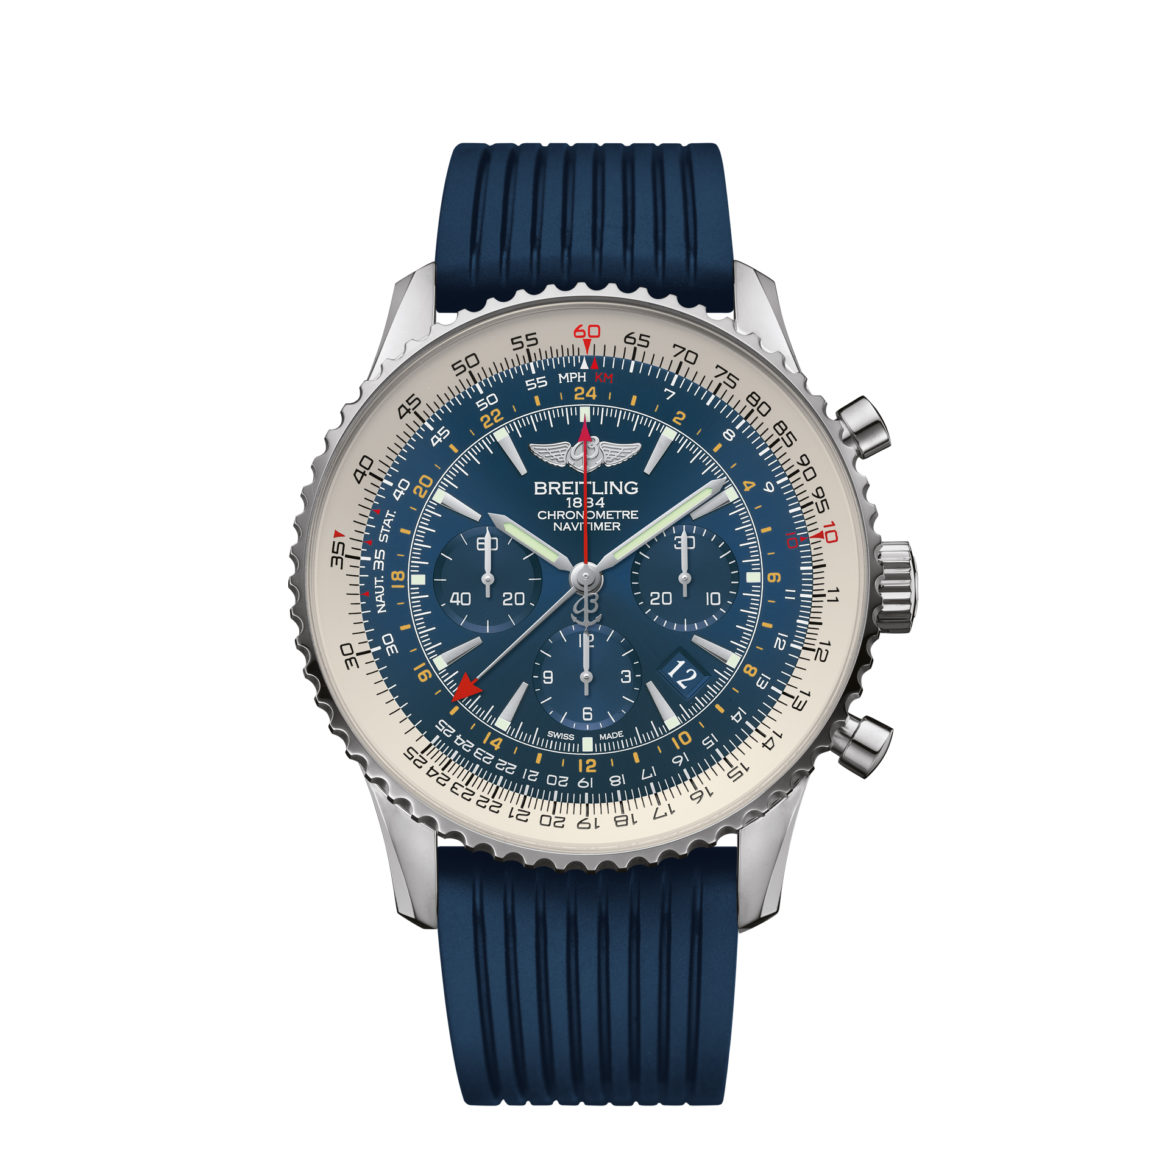 Breitling Navitimer GMT Aurora Blue Limited Edition